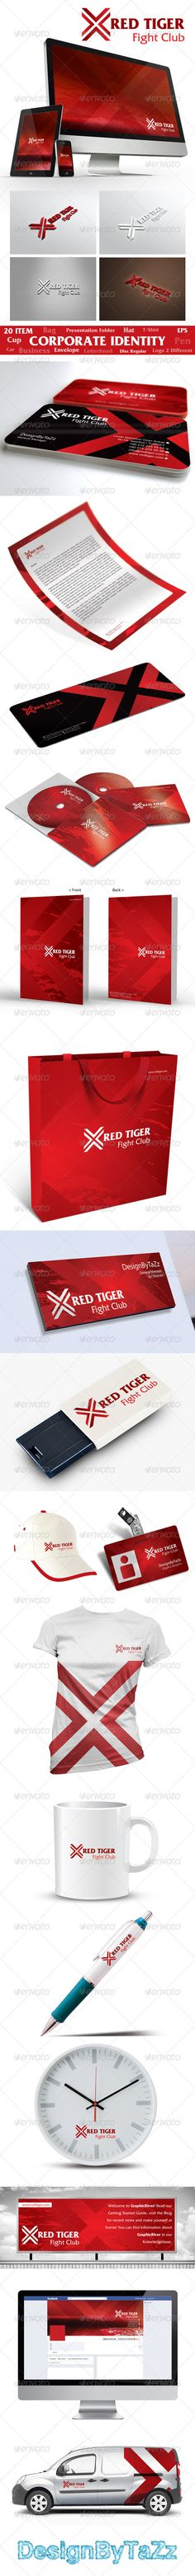 Red Tiger Corporate Identity Package - GraphicRiver Item for Sale